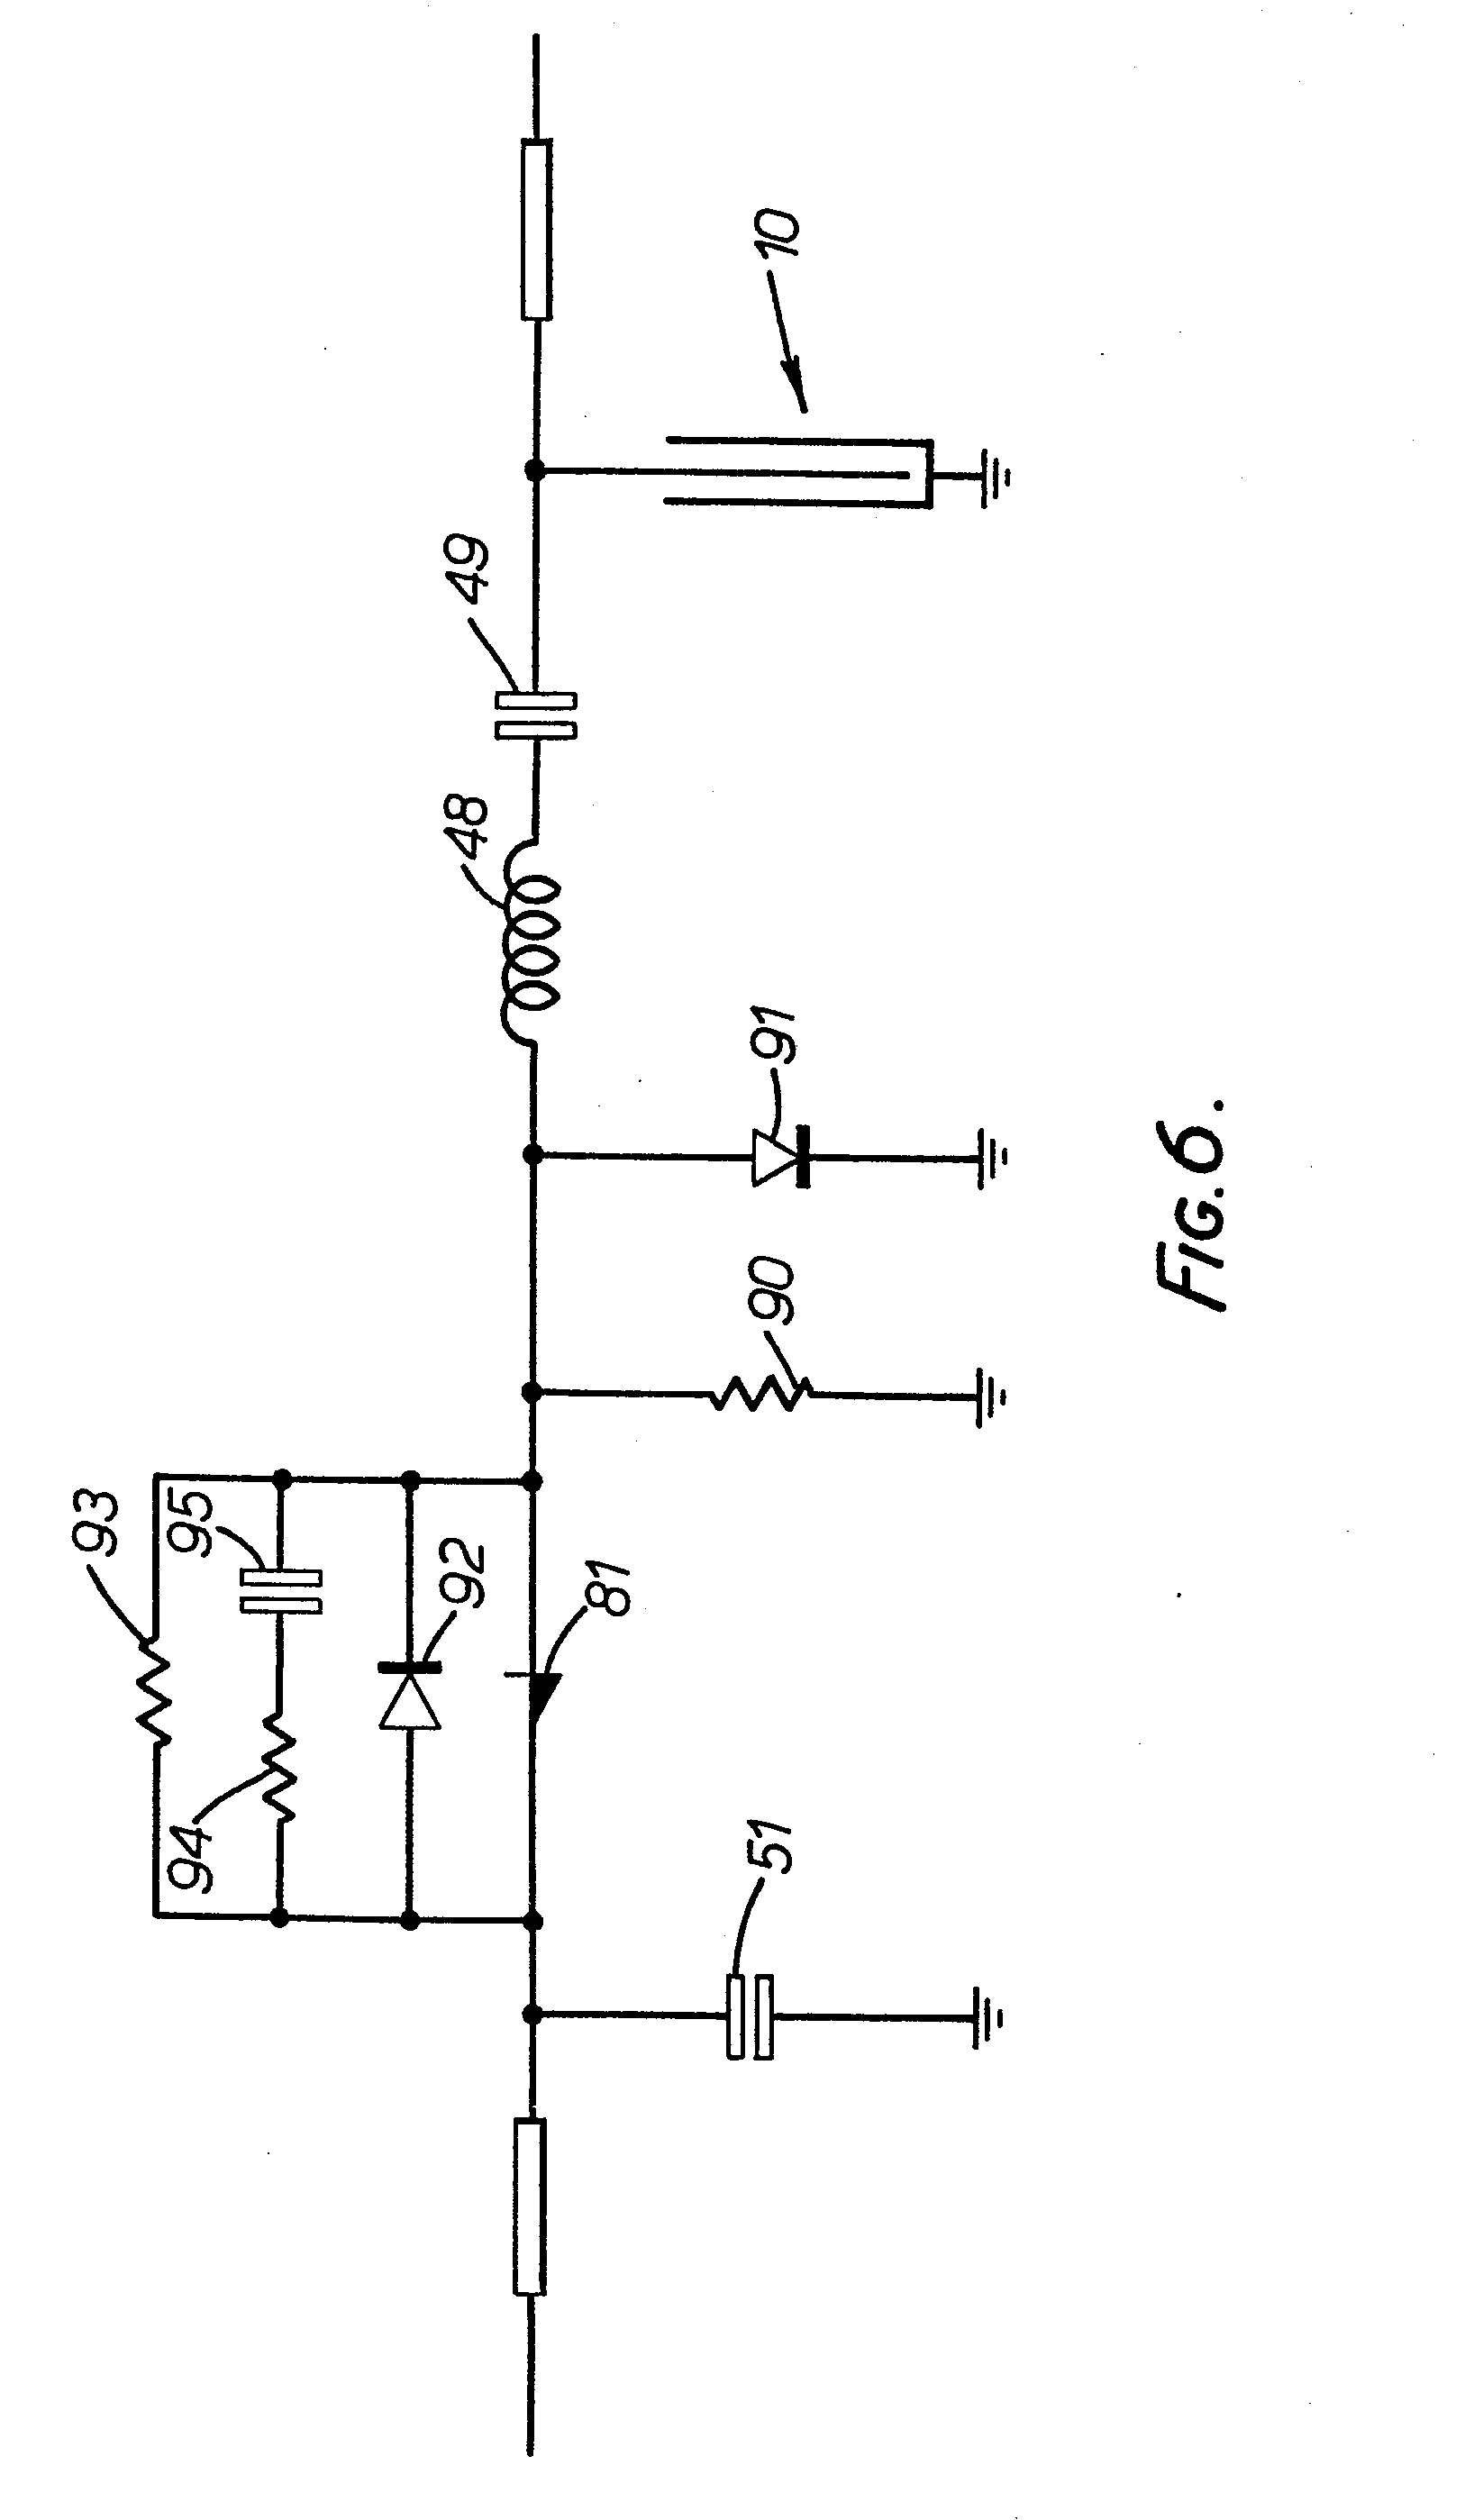 patent ep0093544a1 - improvements in and relating to electrostatic precipitators